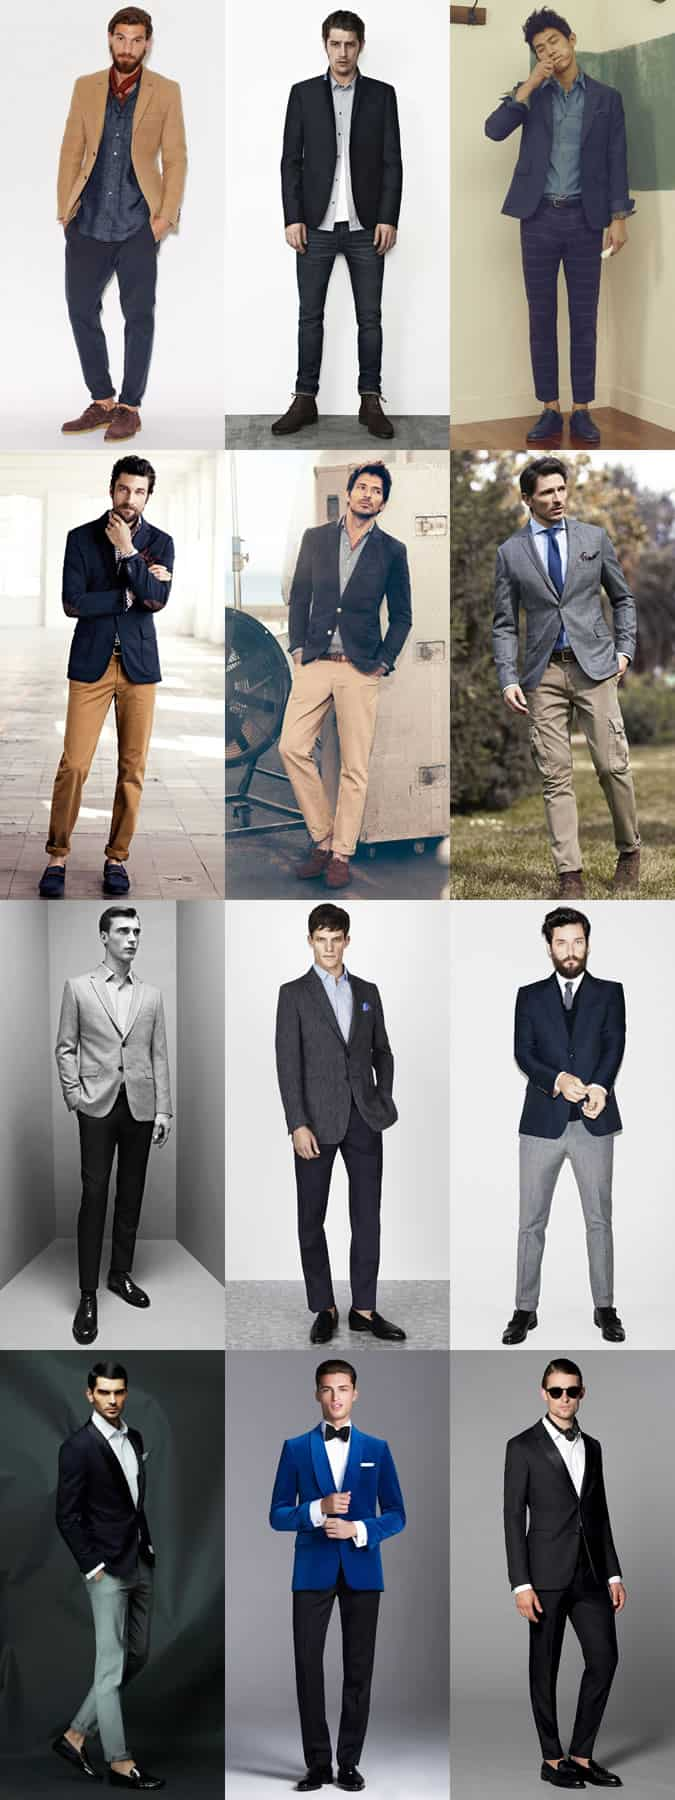 Men's Uniform Lookbook